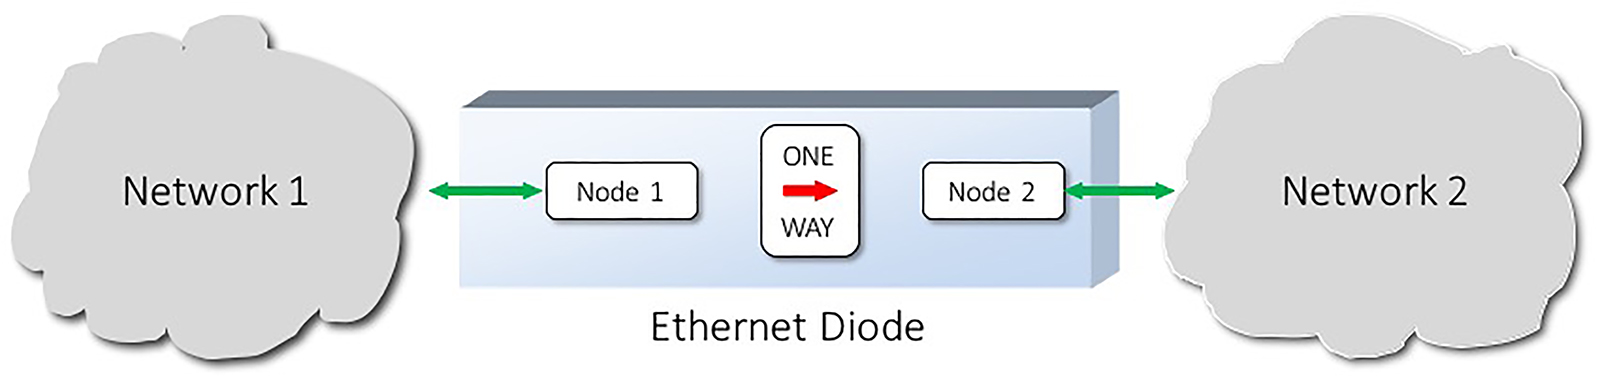 Ethernet Diode - System Overview